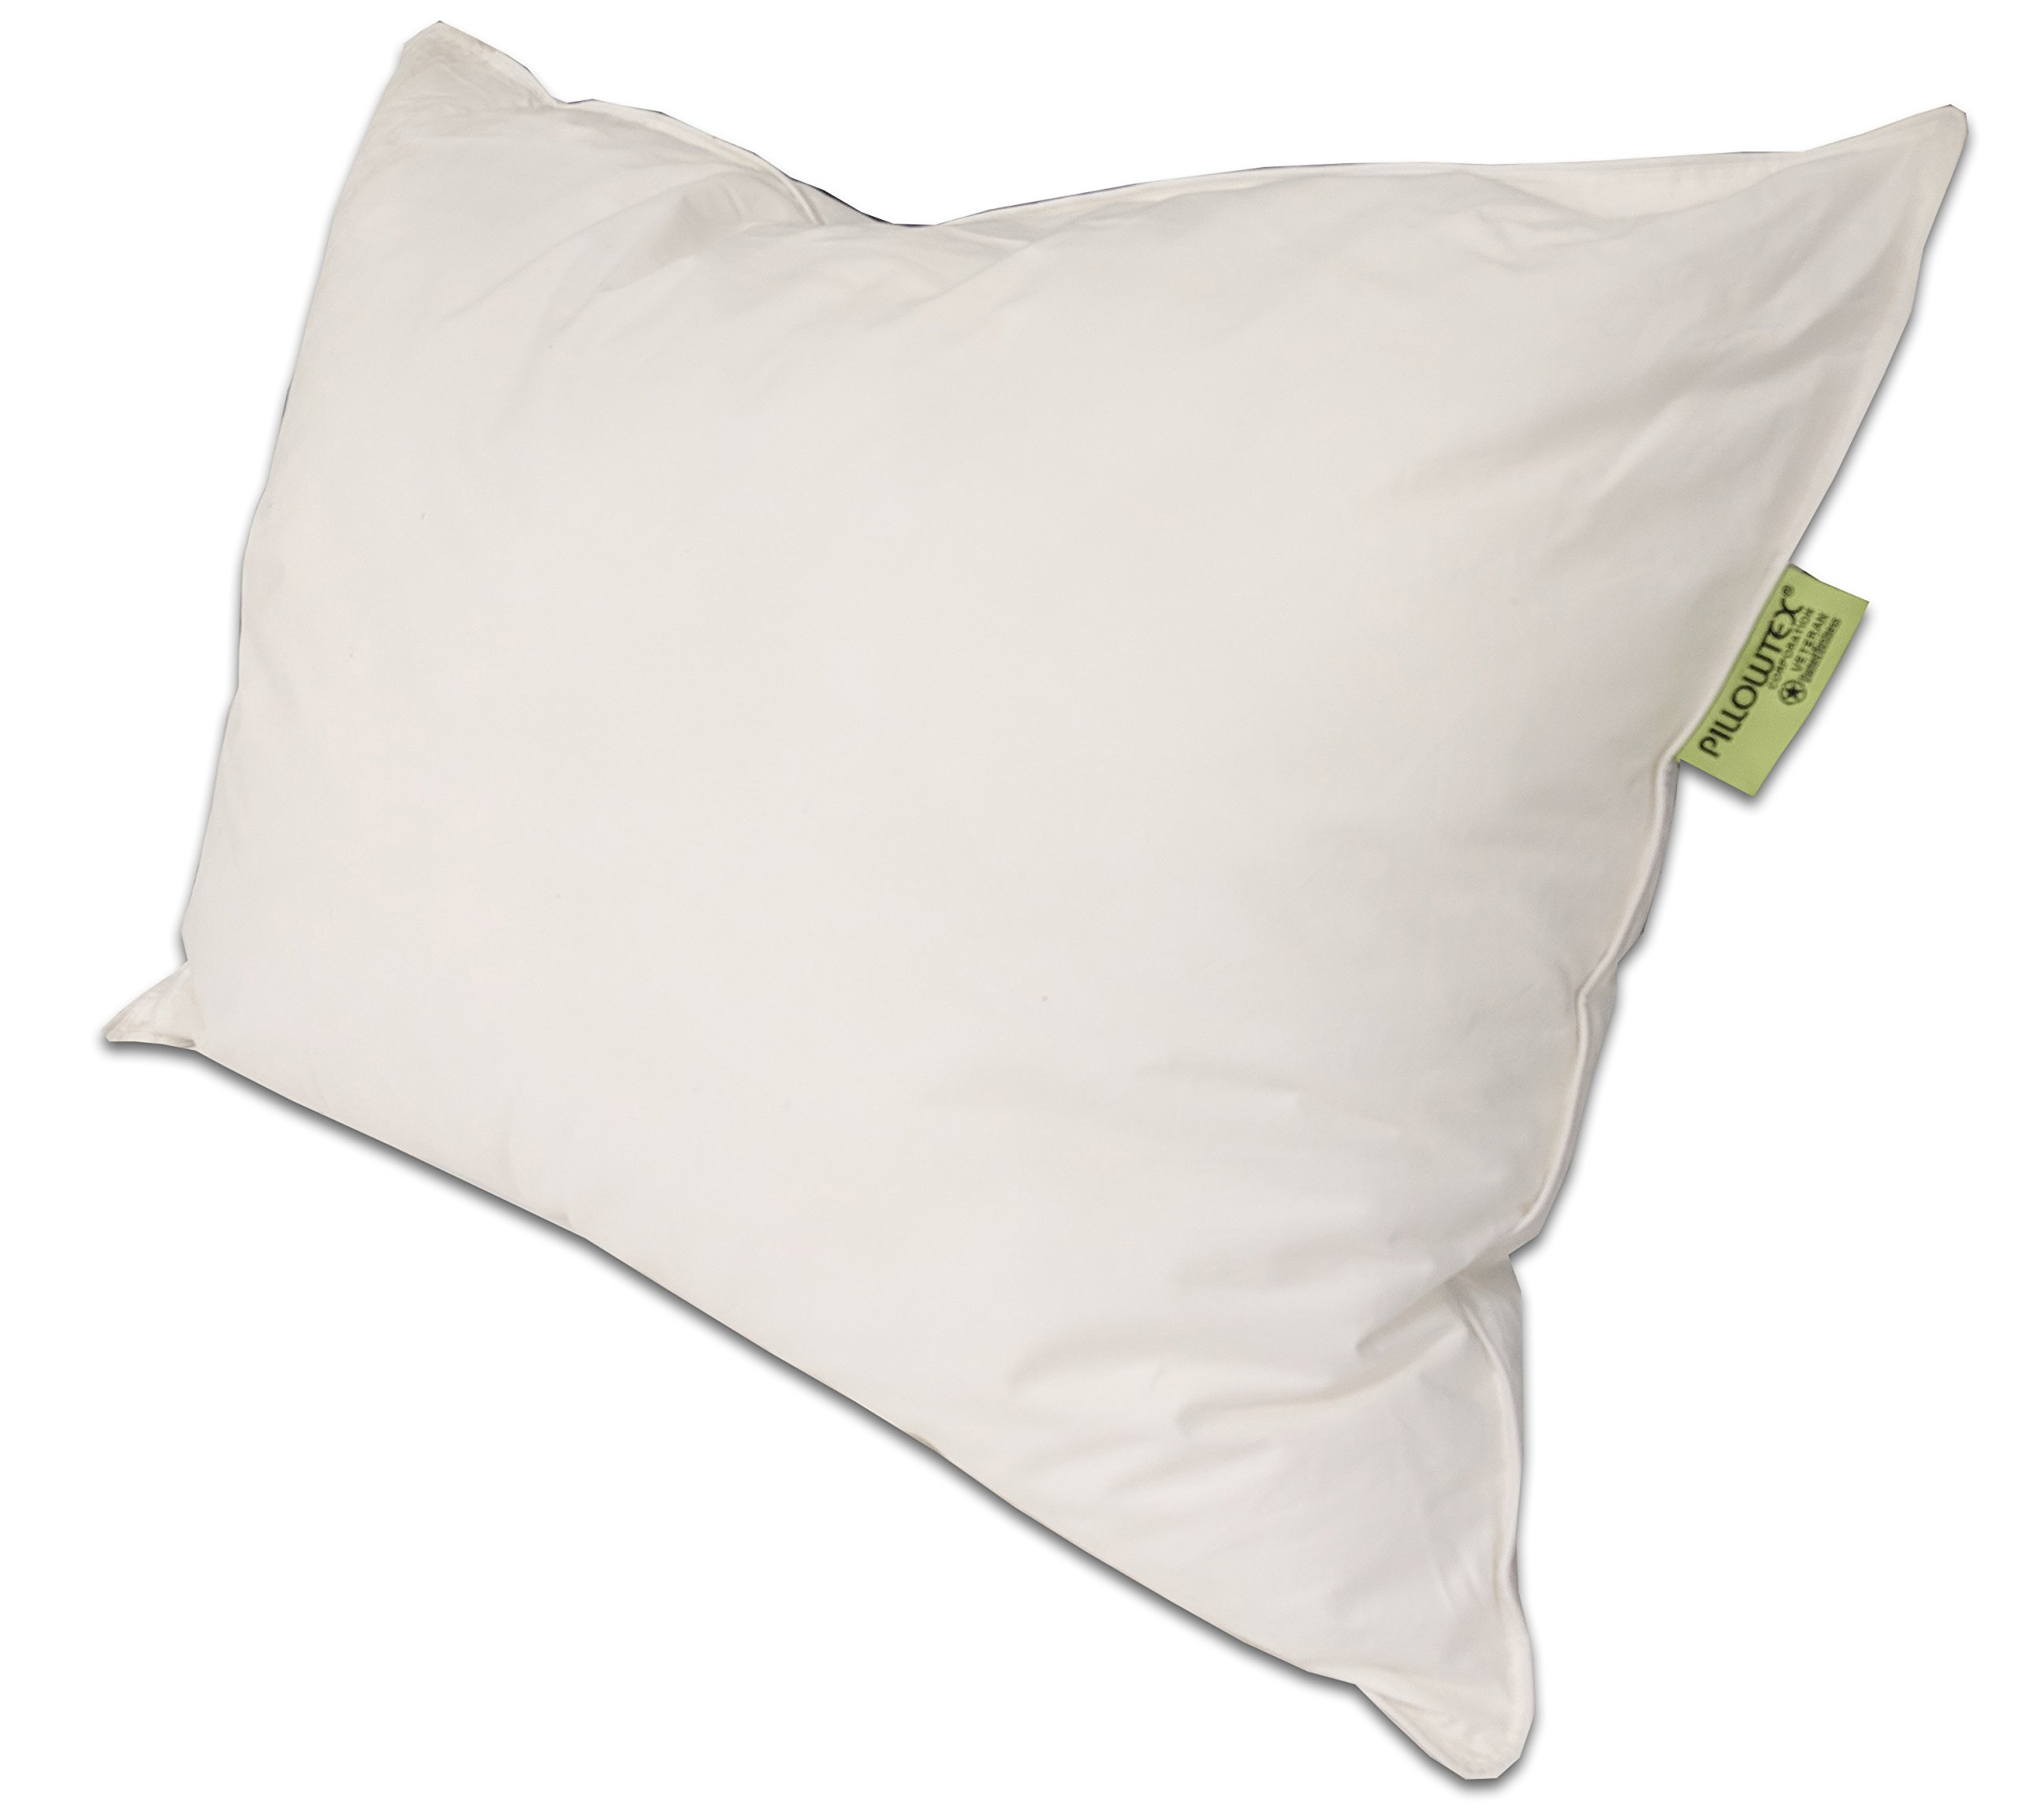 Pillows Similar to Choice Hotels (Standard (20''x26''), Soft)